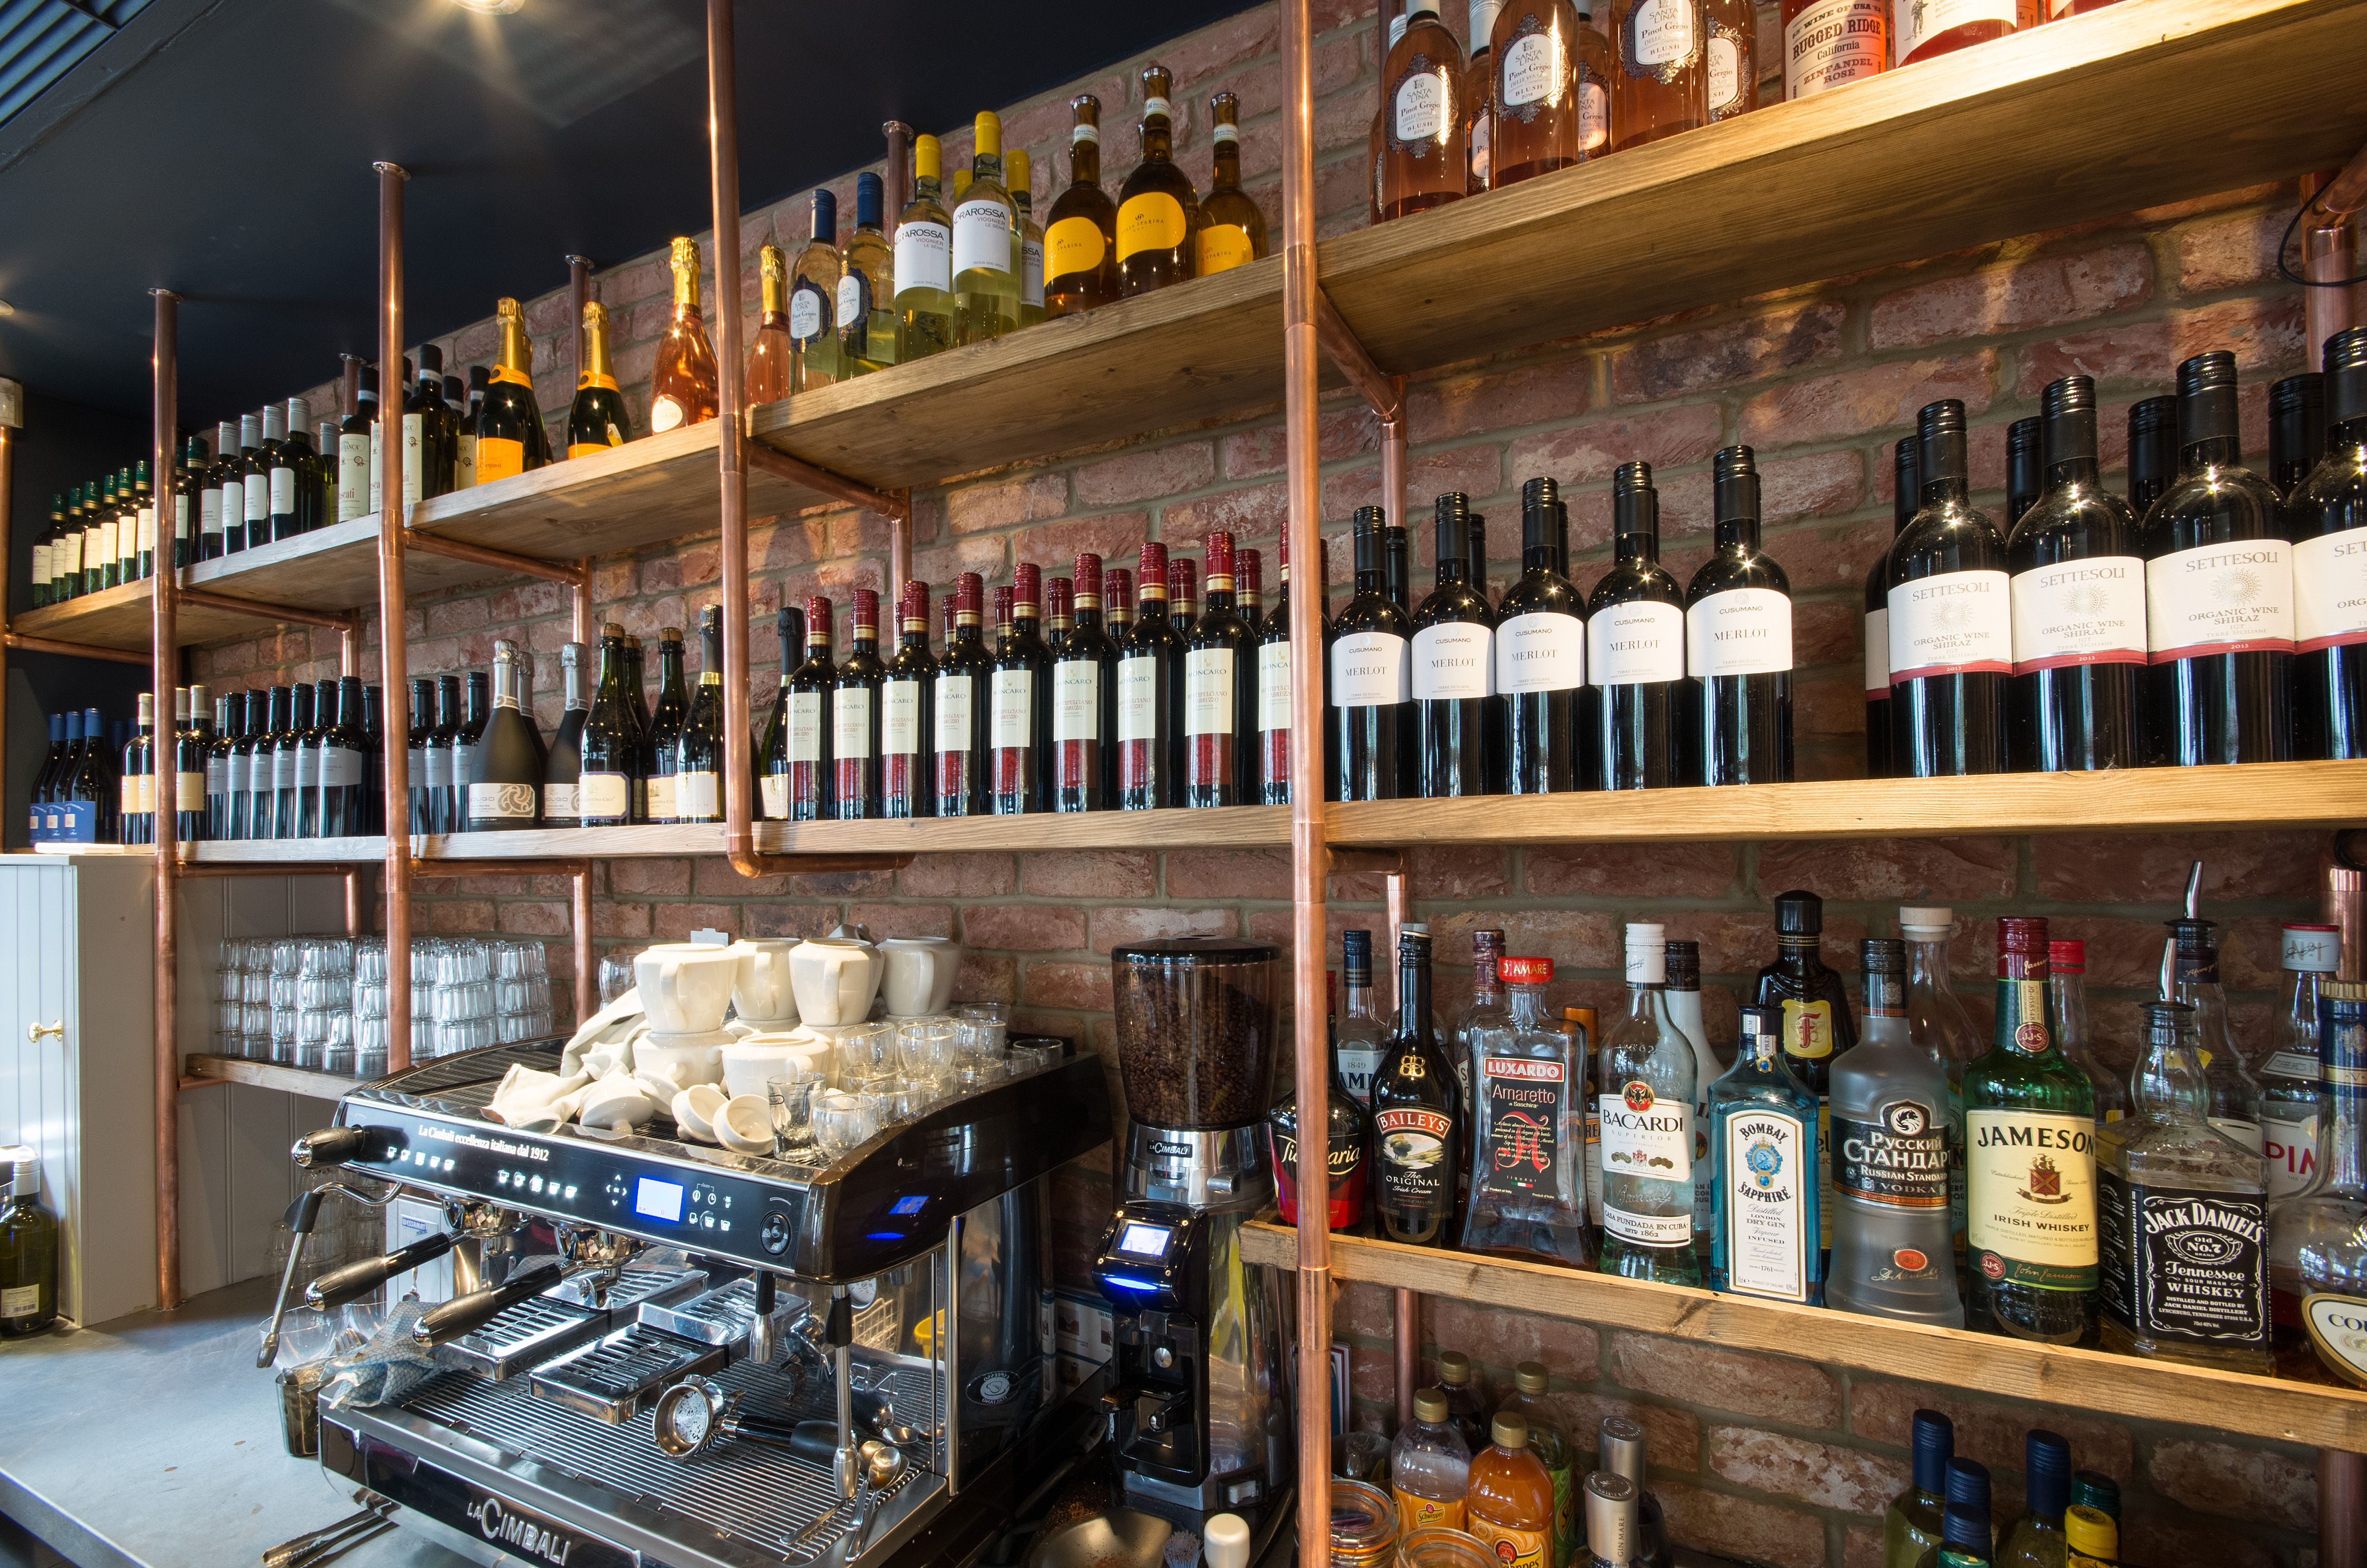 Wonderful Zizzi Bow Street  Covent Garden London  Zizzi Bow Street  With Excellent Zizzi Bow Street  Covent Garden London With Awesome Garden Shed  X  Also Santa Eulalia Tropic Garden In Addition Gardeners Wimbledon And Premier Inn In Covent Garden As Well As Lakeland Garden Furniture Additionally Garden Architectural Salvage From Pinterestcom With   Excellent Zizzi Bow Street  Covent Garden London  Zizzi Bow Street  With Awesome Zizzi Bow Street  Covent Garden London And Wonderful Garden Shed  X  Also Santa Eulalia Tropic Garden In Addition Gardeners Wimbledon From Pinterestcom